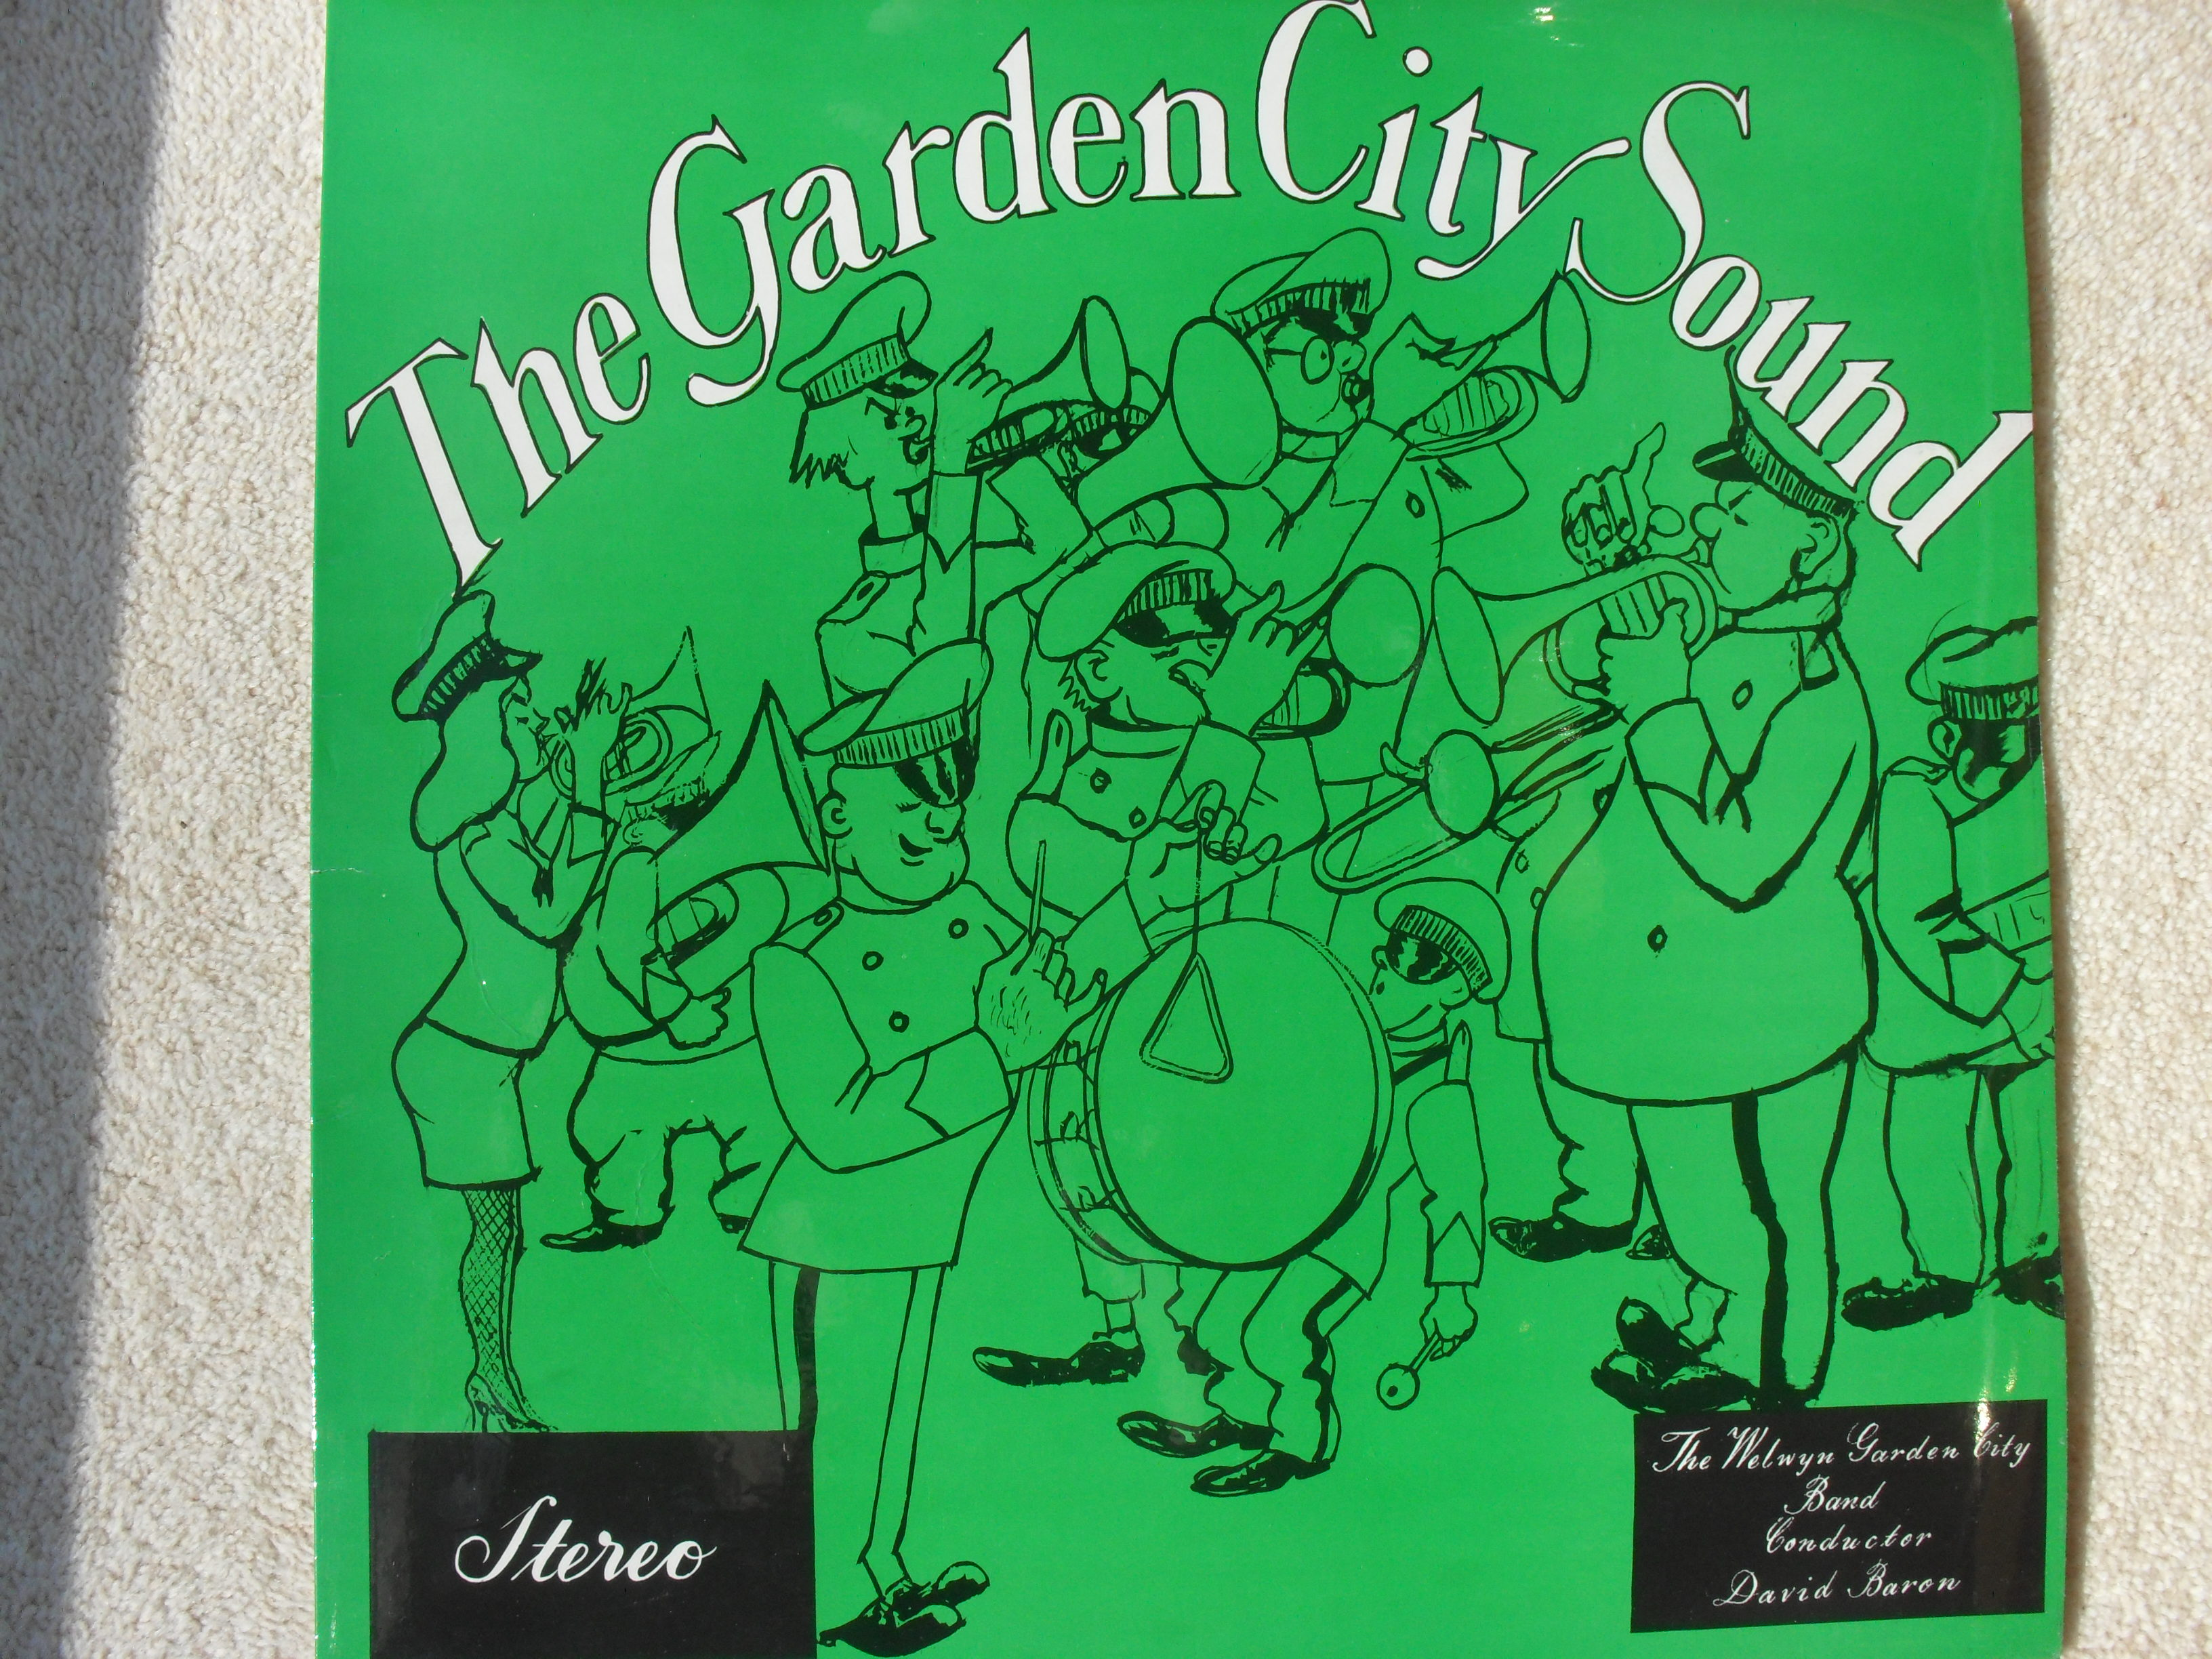 The Garden City Sound - Front Cover